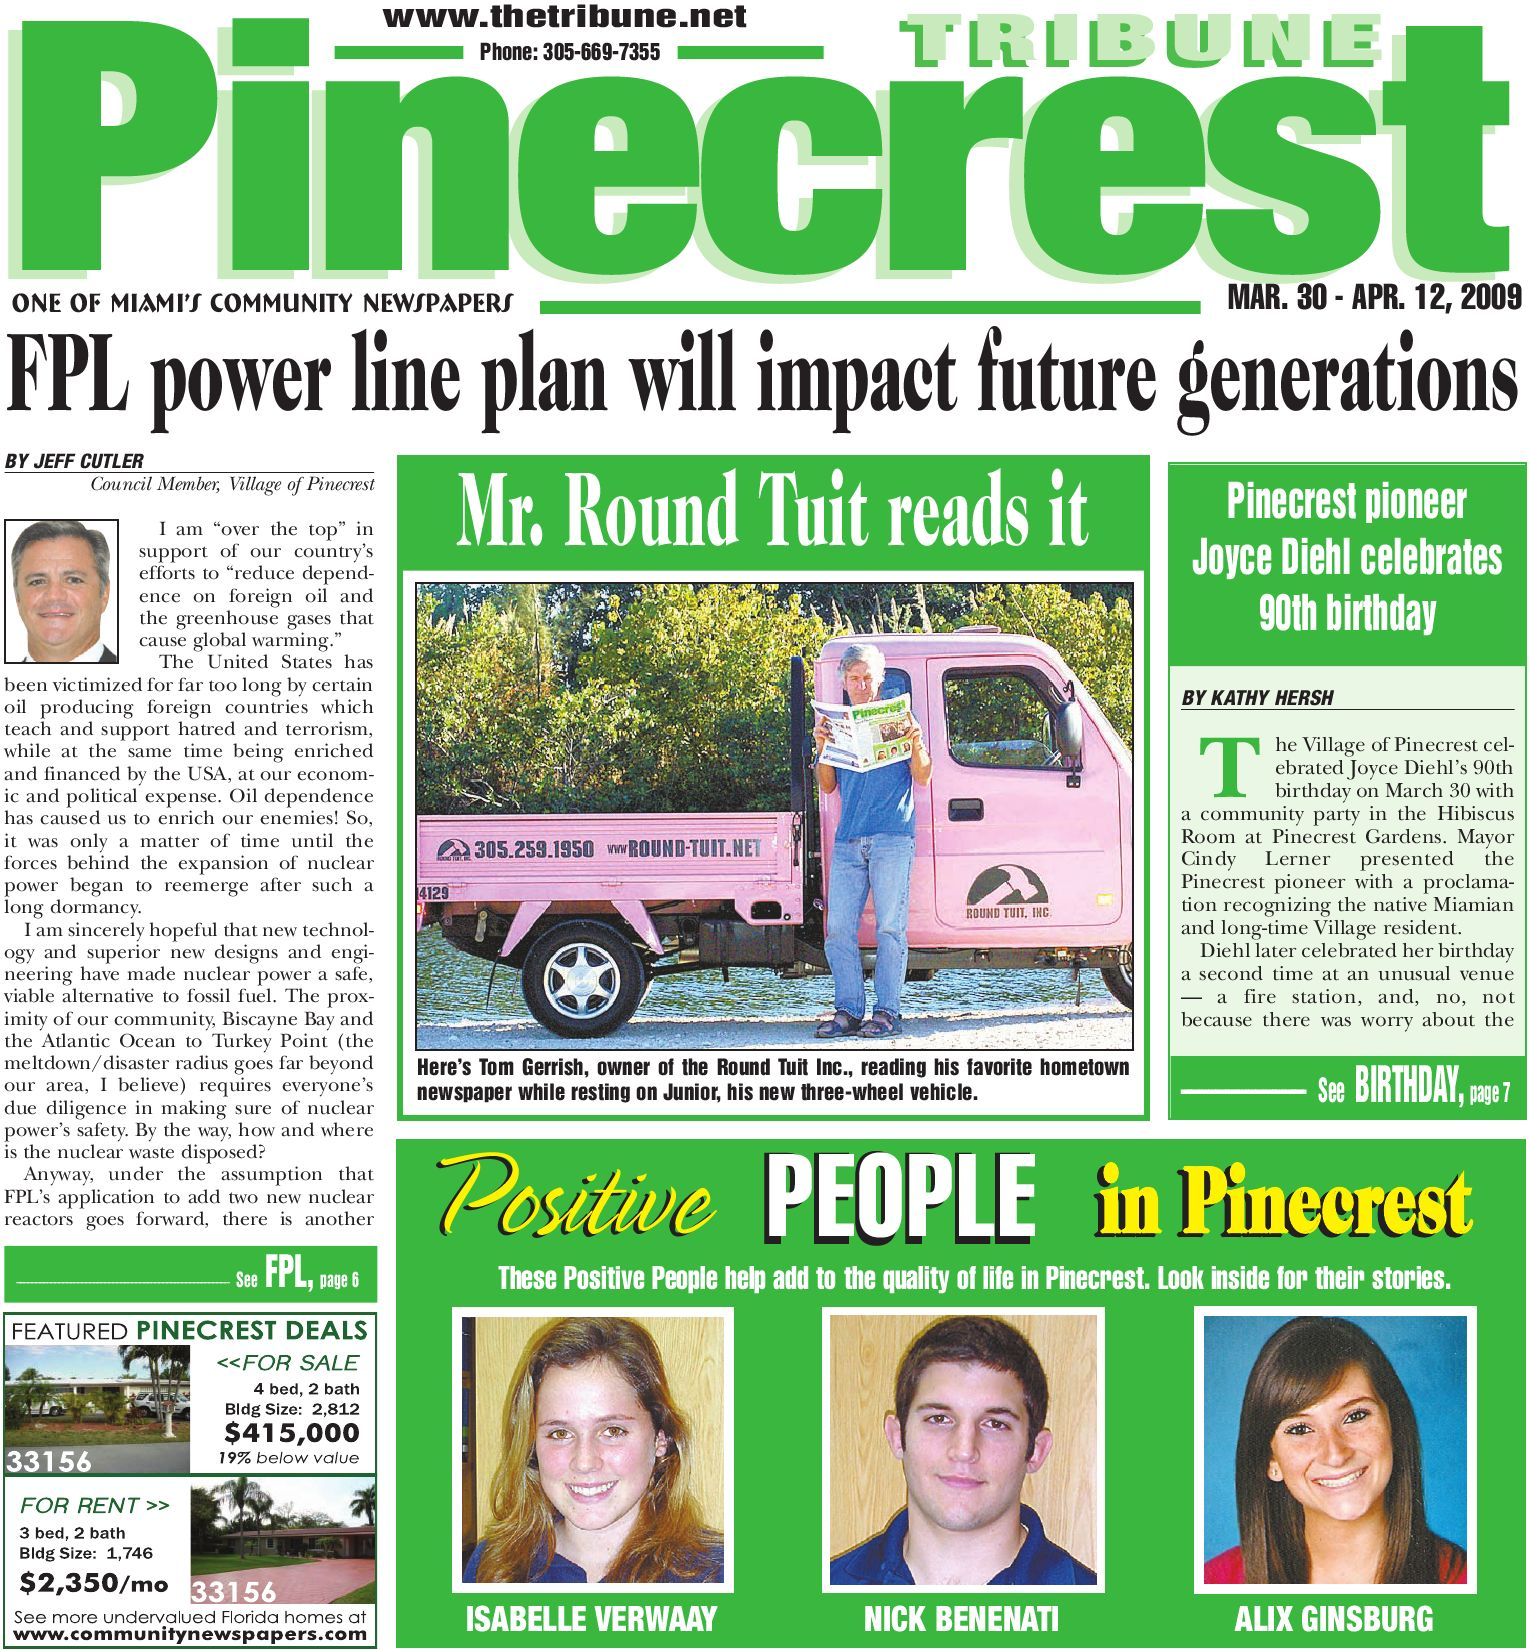 Pinecrest Tribune, March 30, 2009 Edition - Local, Events